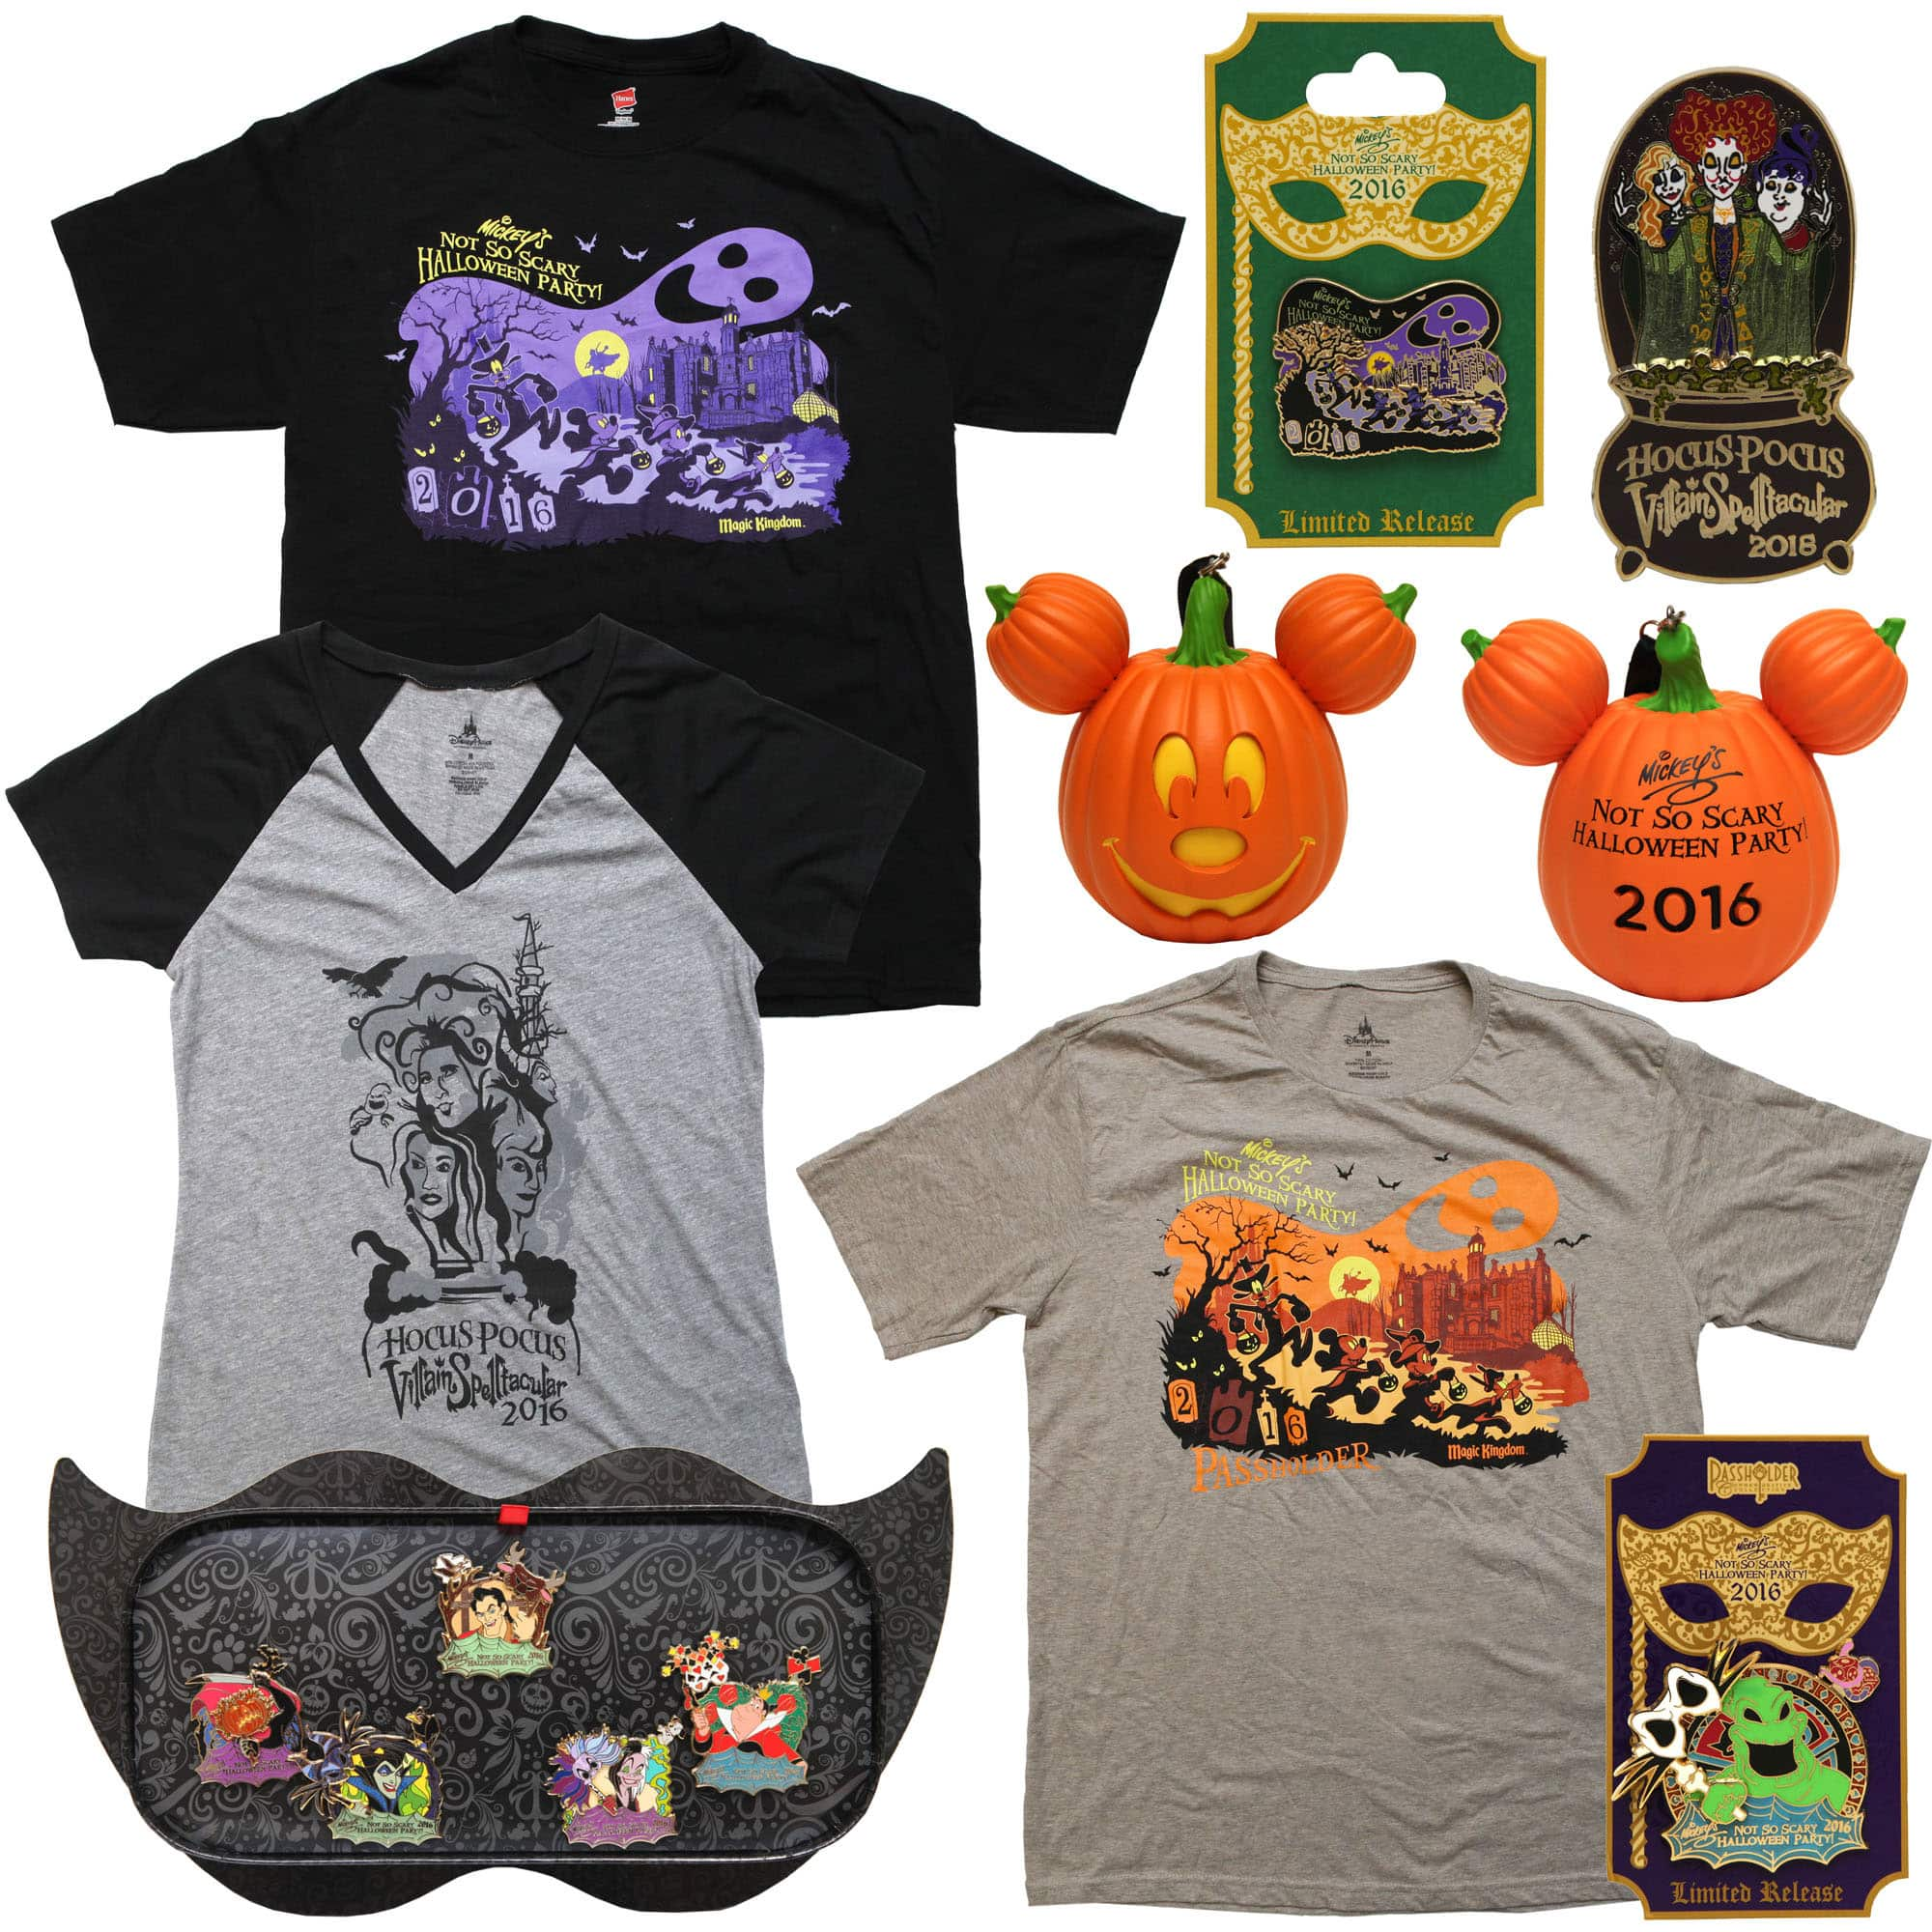 Disneyland Halloween 2019 Merchandise.Disney Parks Blog Unboxed Mickey S Not So Scary Halloween Party